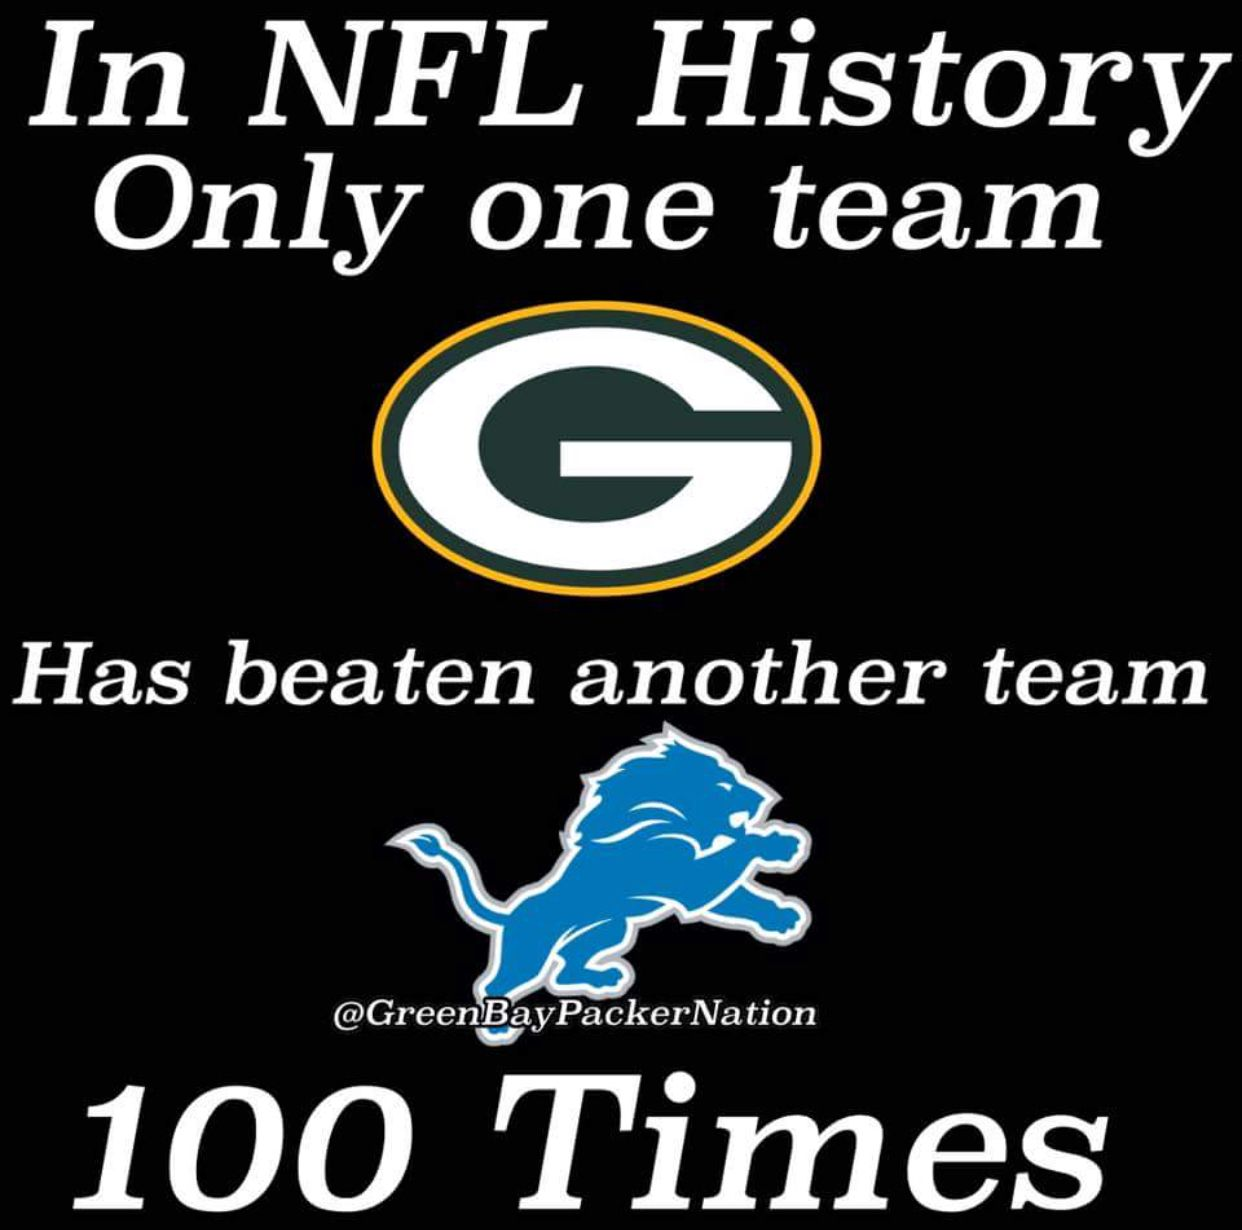 Pin By Robb Roidt On Green Bay Quotes Green Bay Packers Funny Green Bay Packers Fans Green Bay Packers Meme